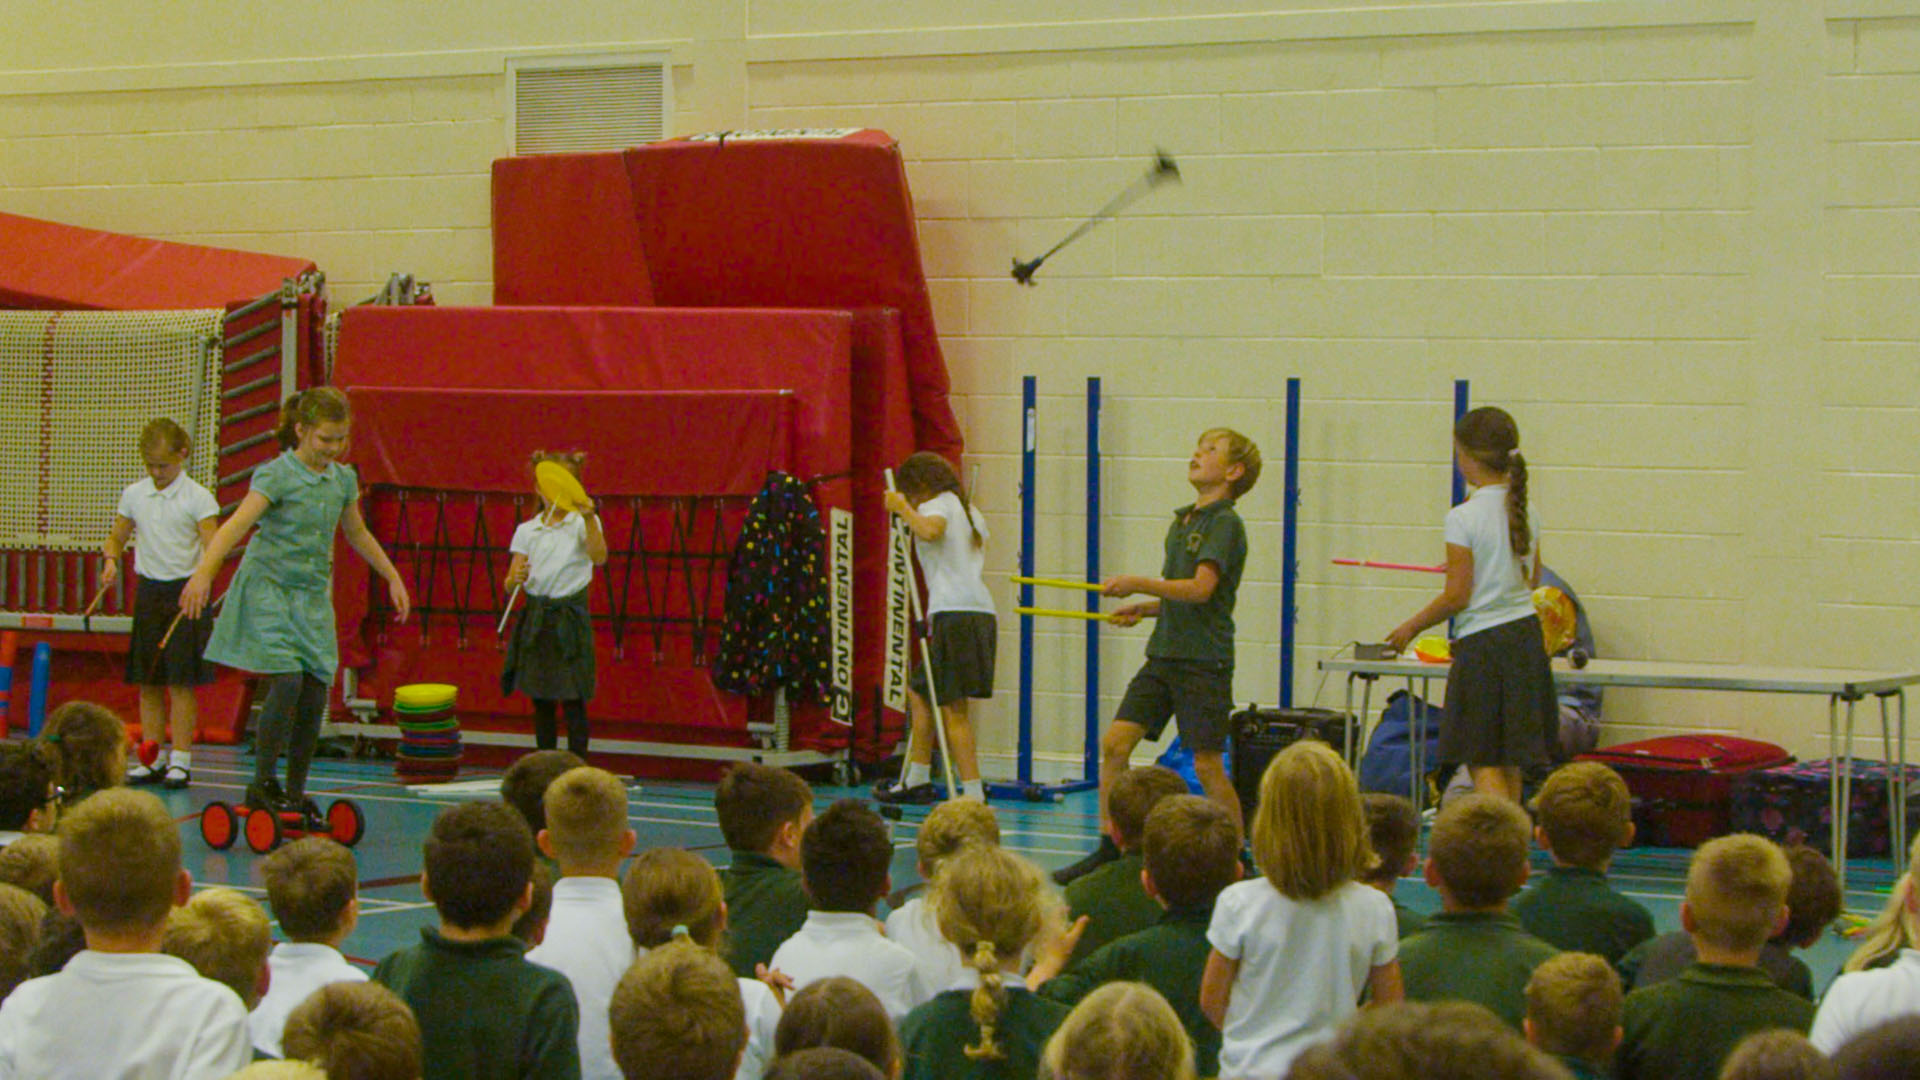 School children performing circus skills in school hall